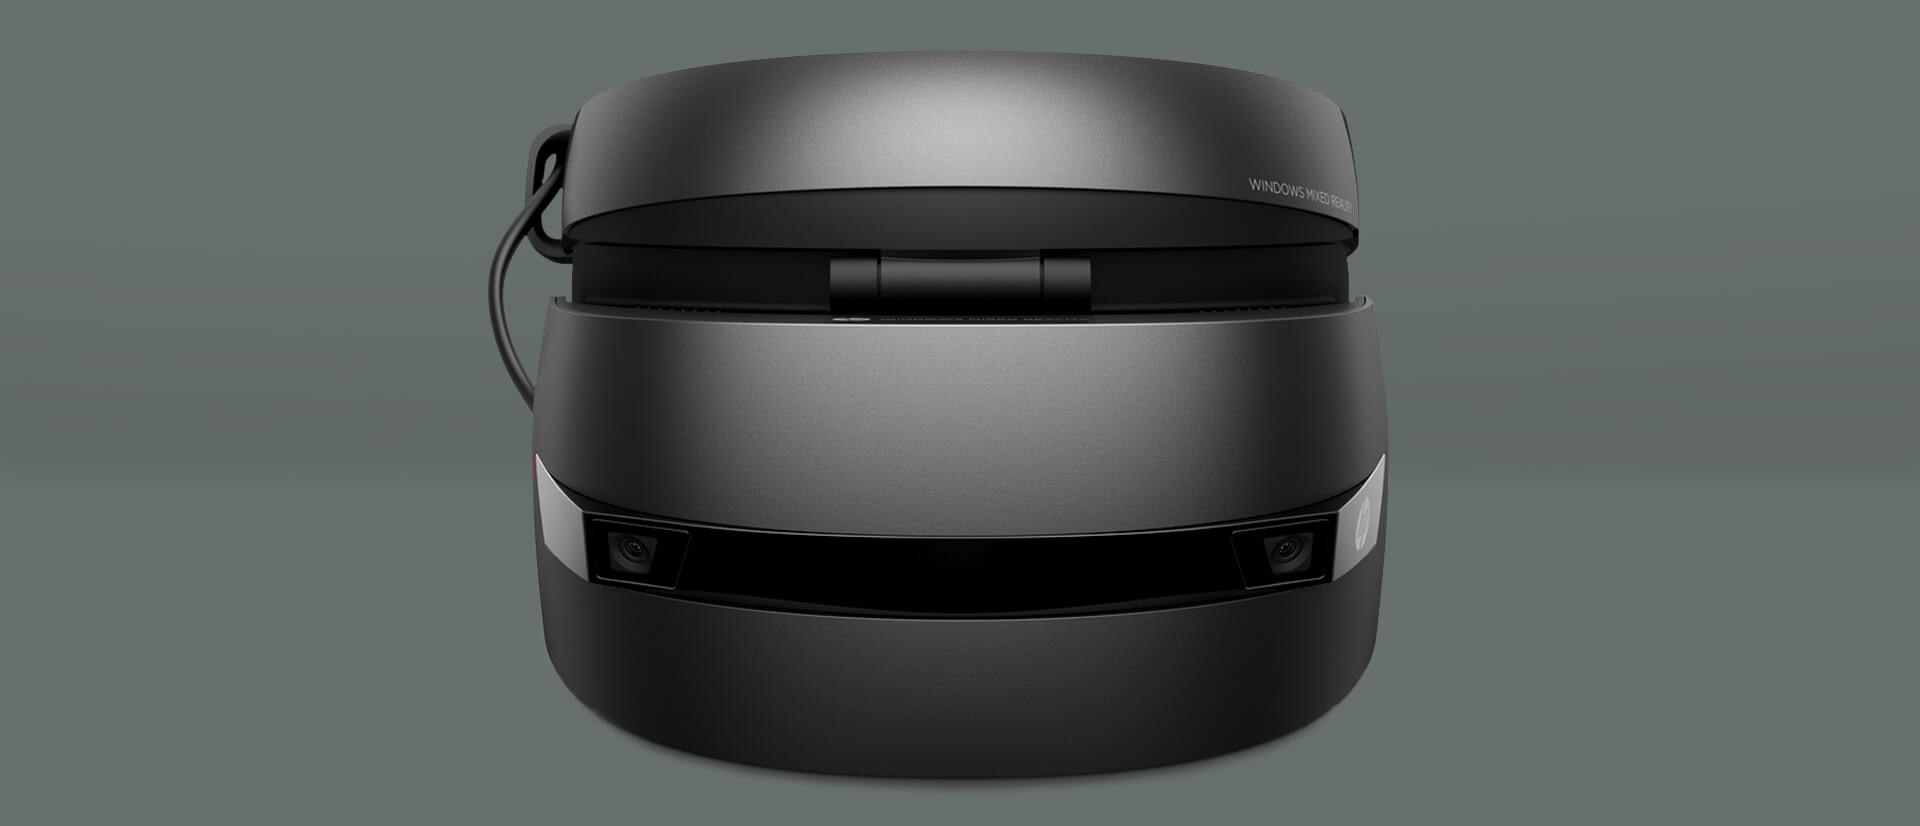 HP Windows Mixed Reality headset side by side